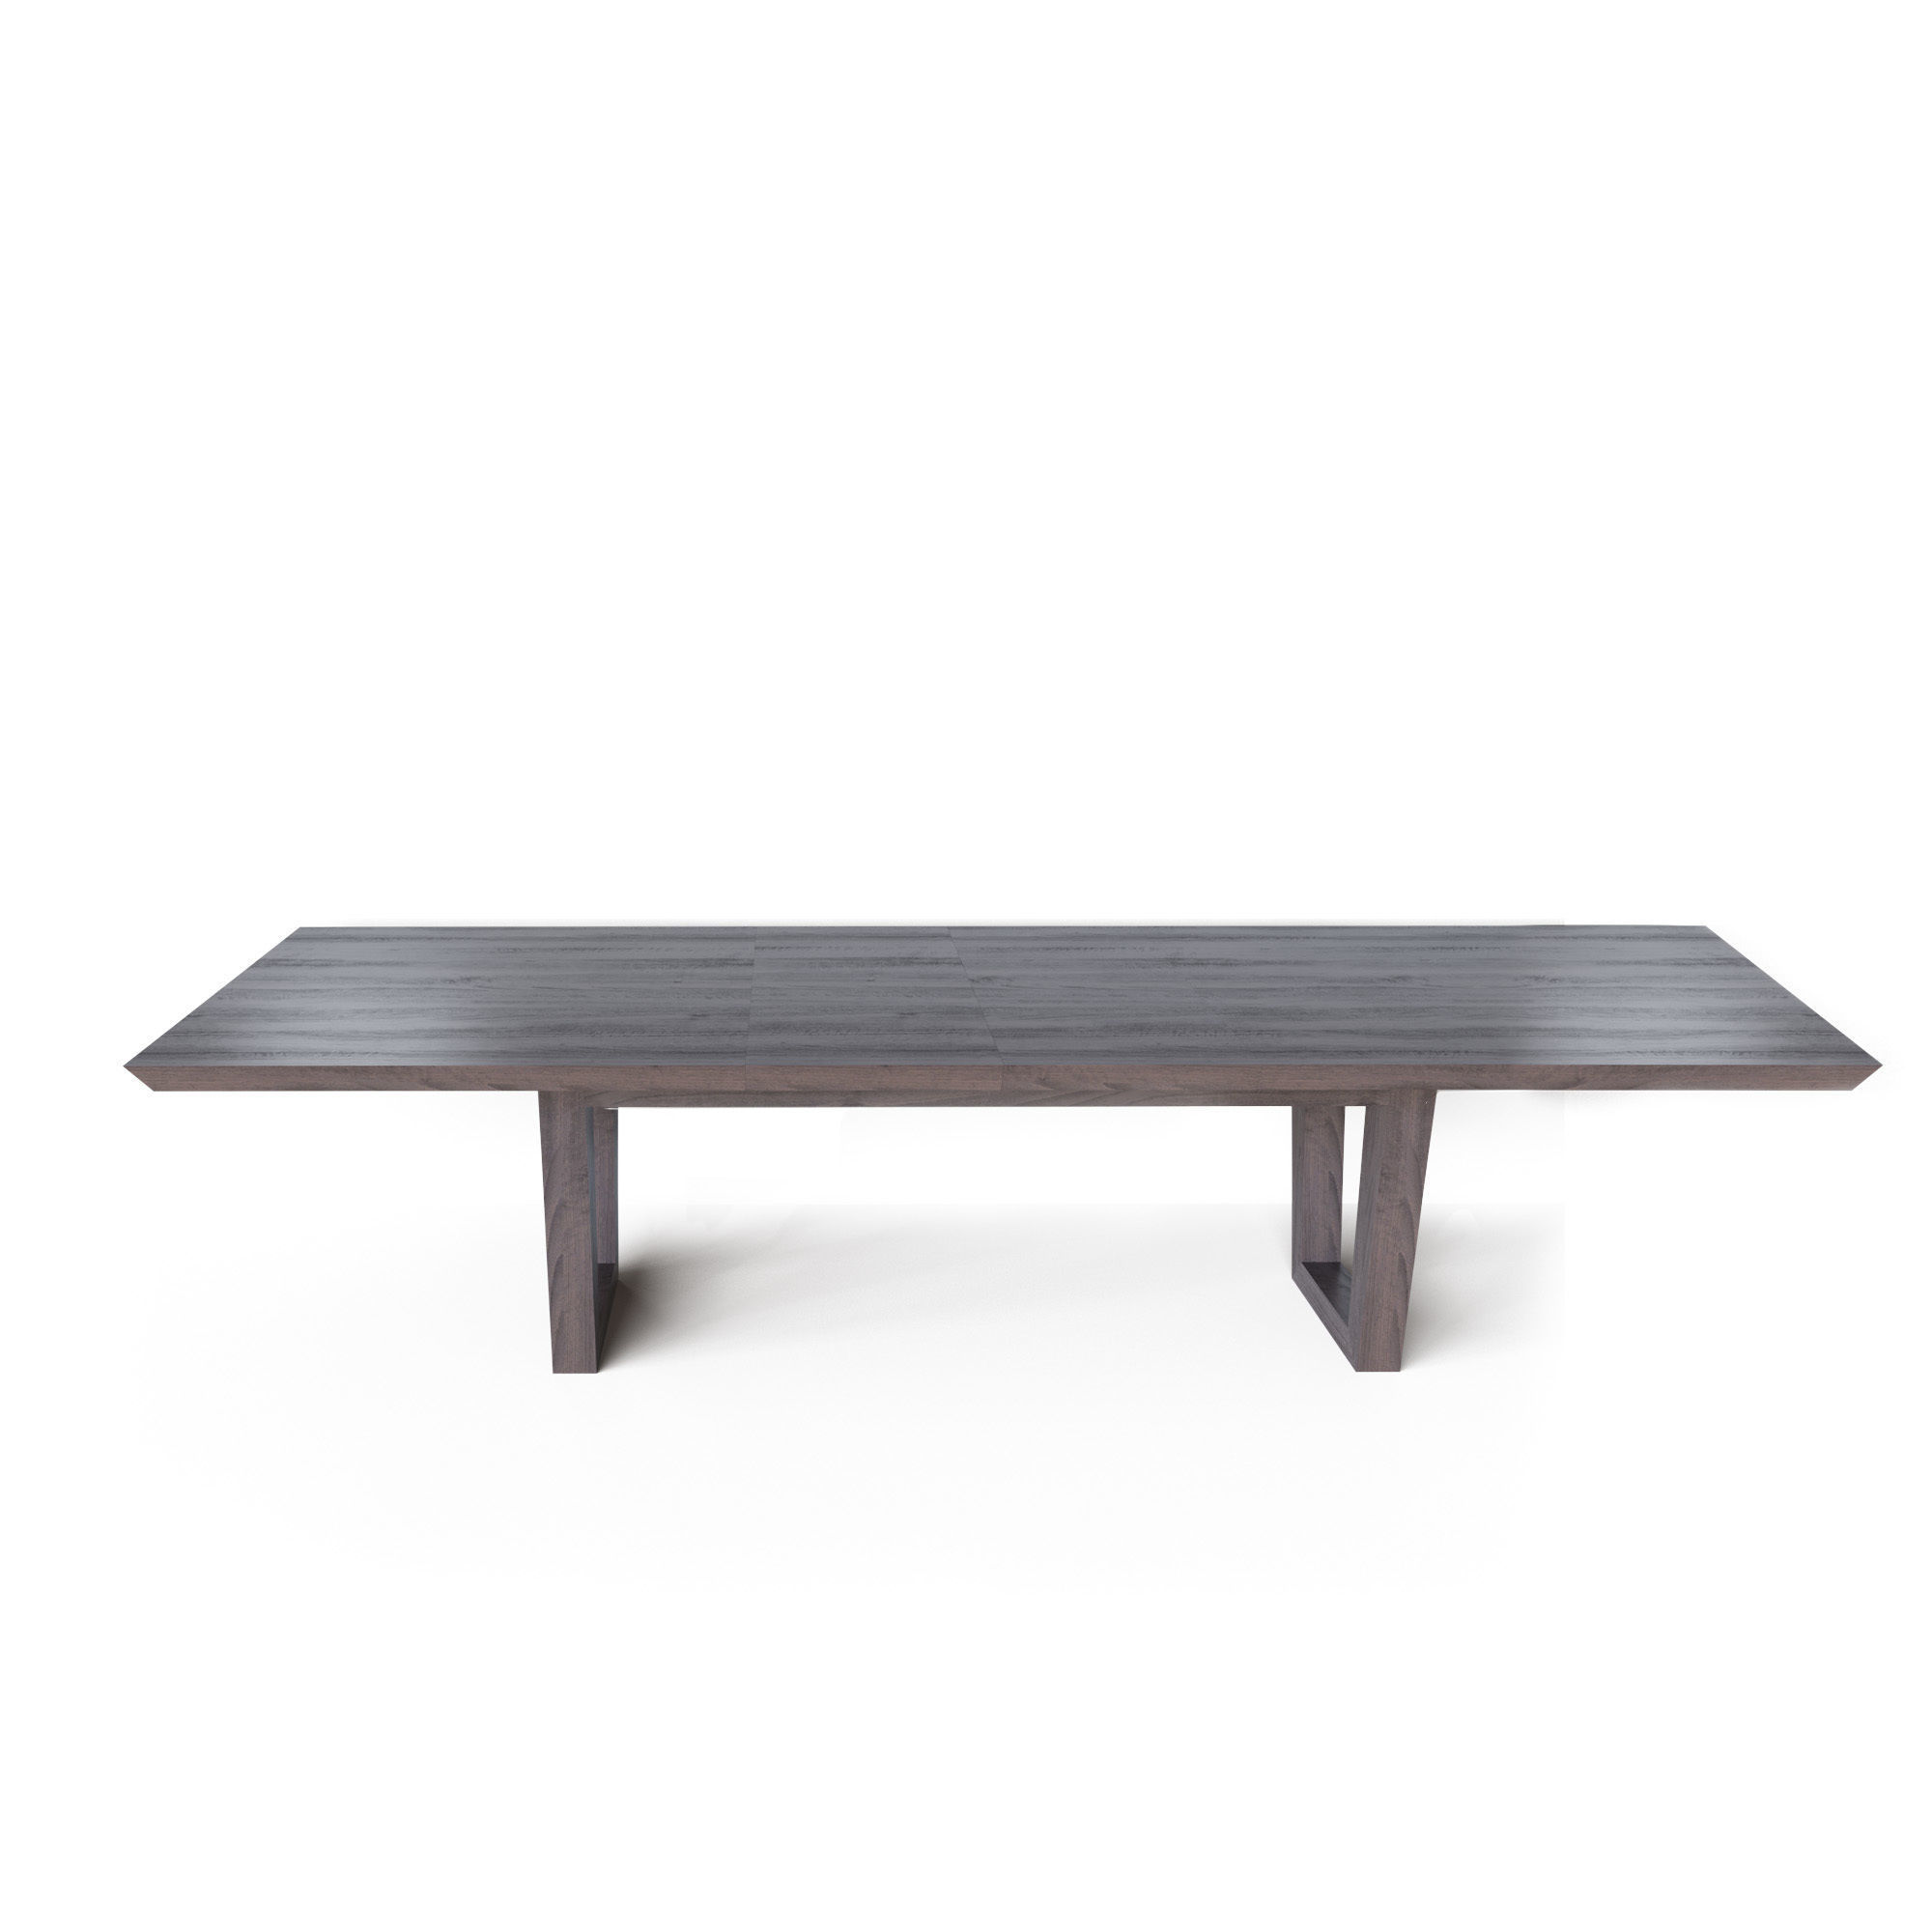 3d Cohesion Program Extendable Dining Table Cgtrader